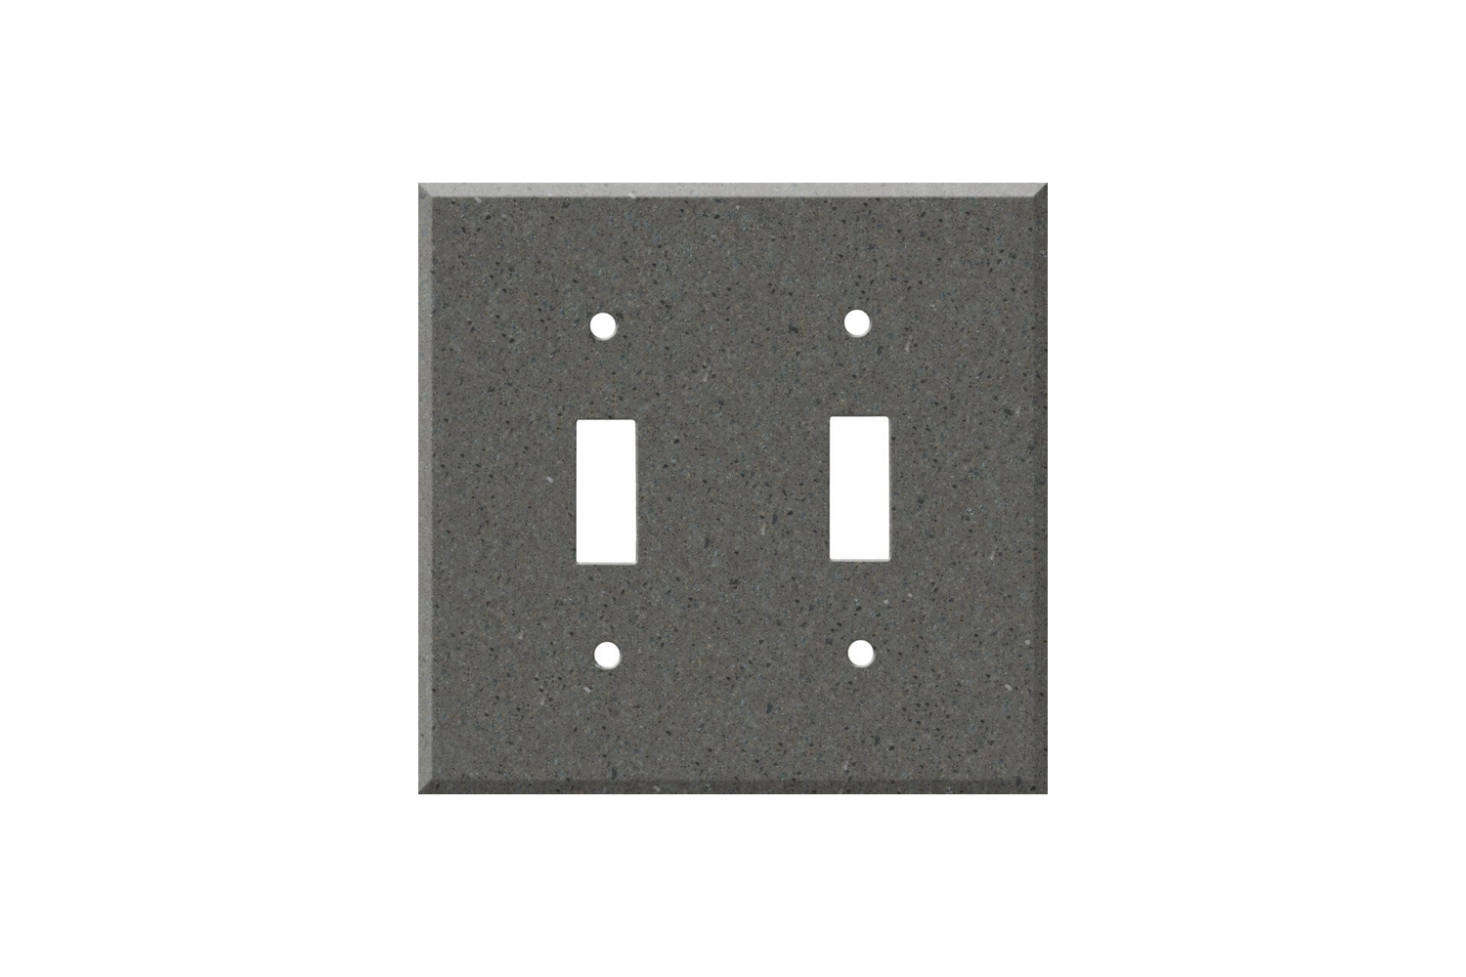 The Corian Lava Rock Wall Plates start at $.50 at Switch Hits.